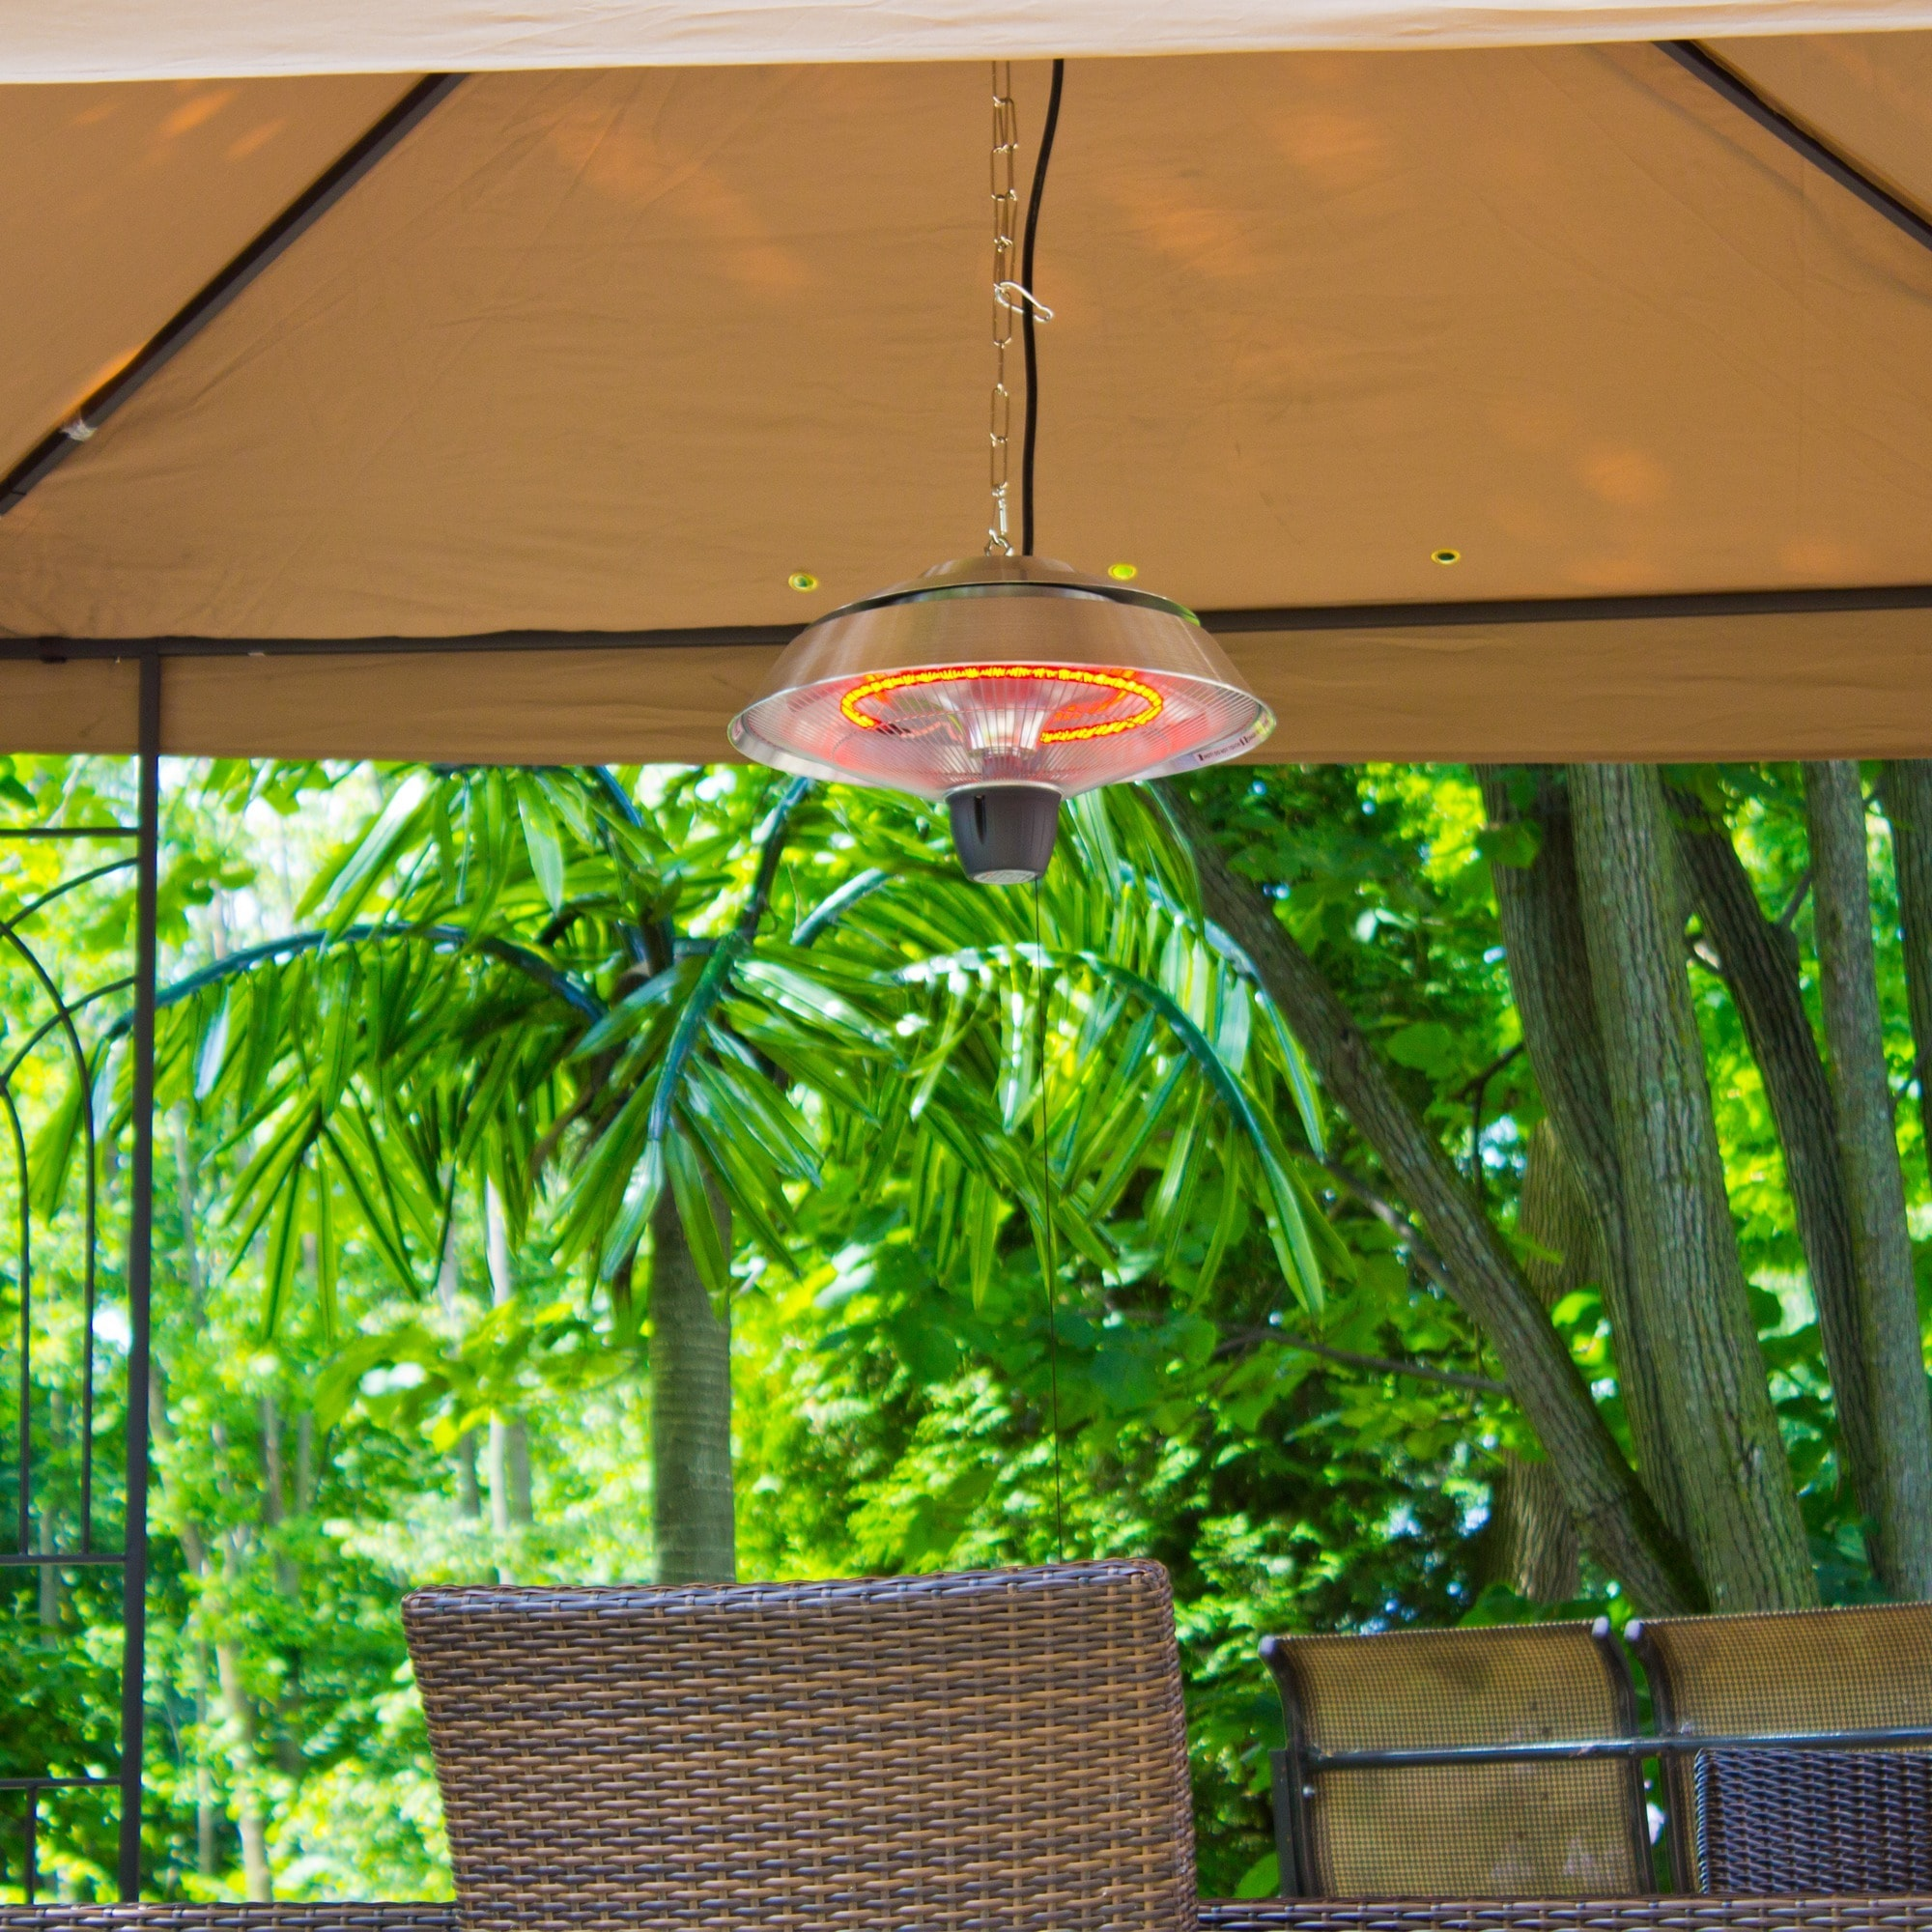 EnerG+ Outdoor Hanging Infrared Patio Heater   Free Shipping Today    Overstock   16942795